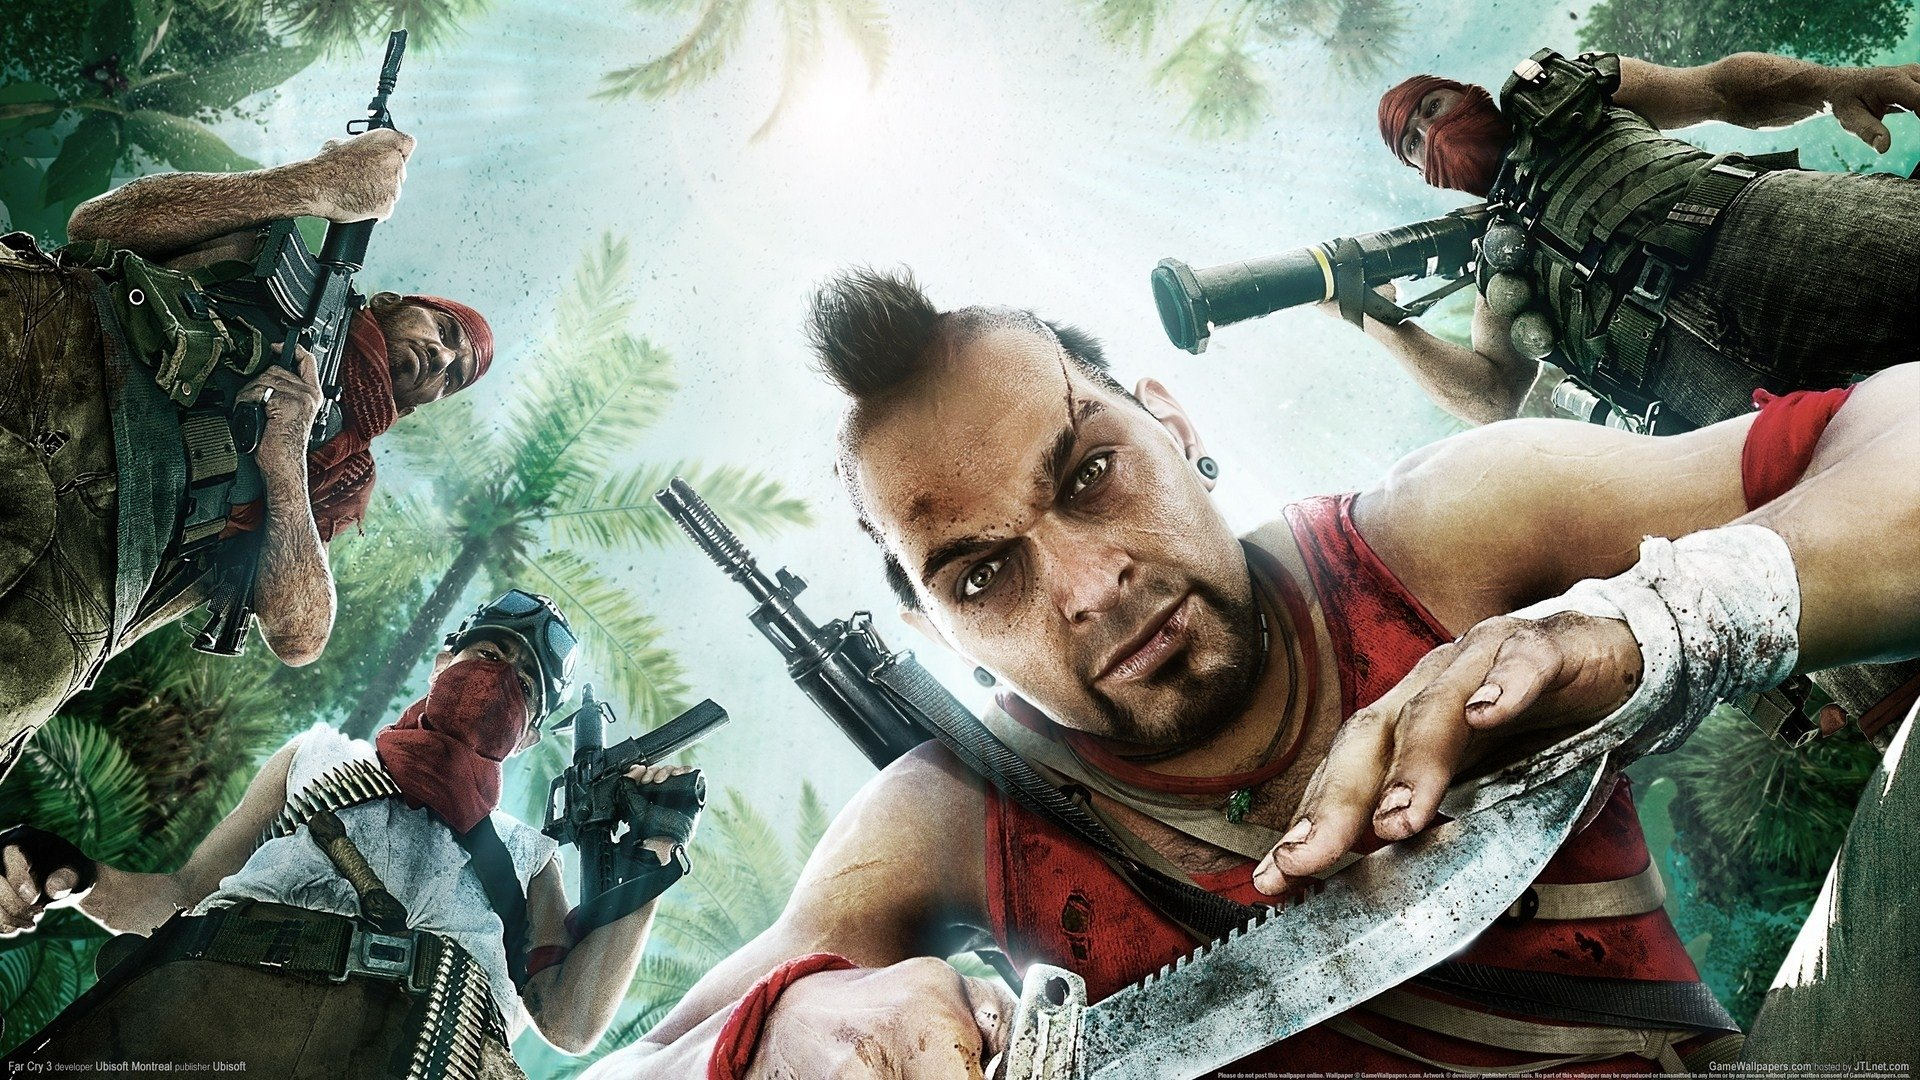 96 Far Cry 3 Hd Wallpapers Background Images Wallpaper Abyss